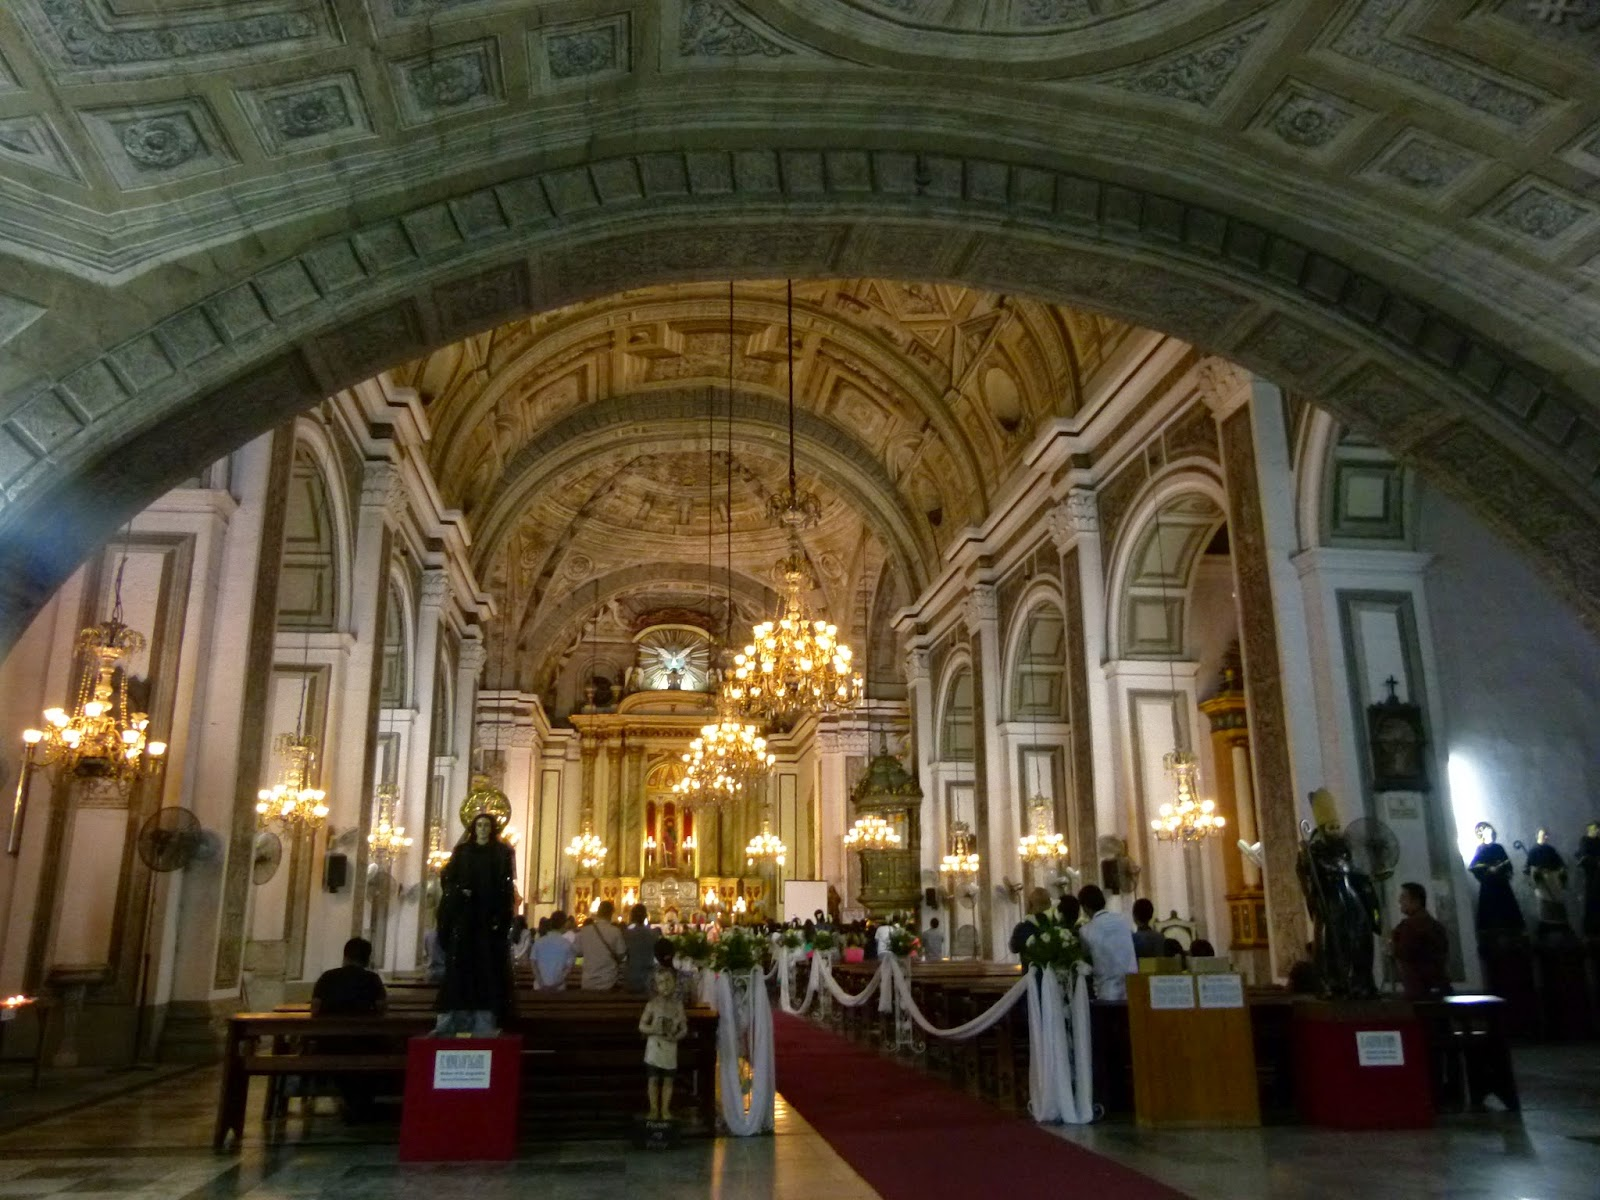 The Grand Interiors Of The Church Complements The Dramatic Wedding Vows.  Should My Bride To Be Decide To Appear Two Years From Now, The San Agustin  Might Be ...